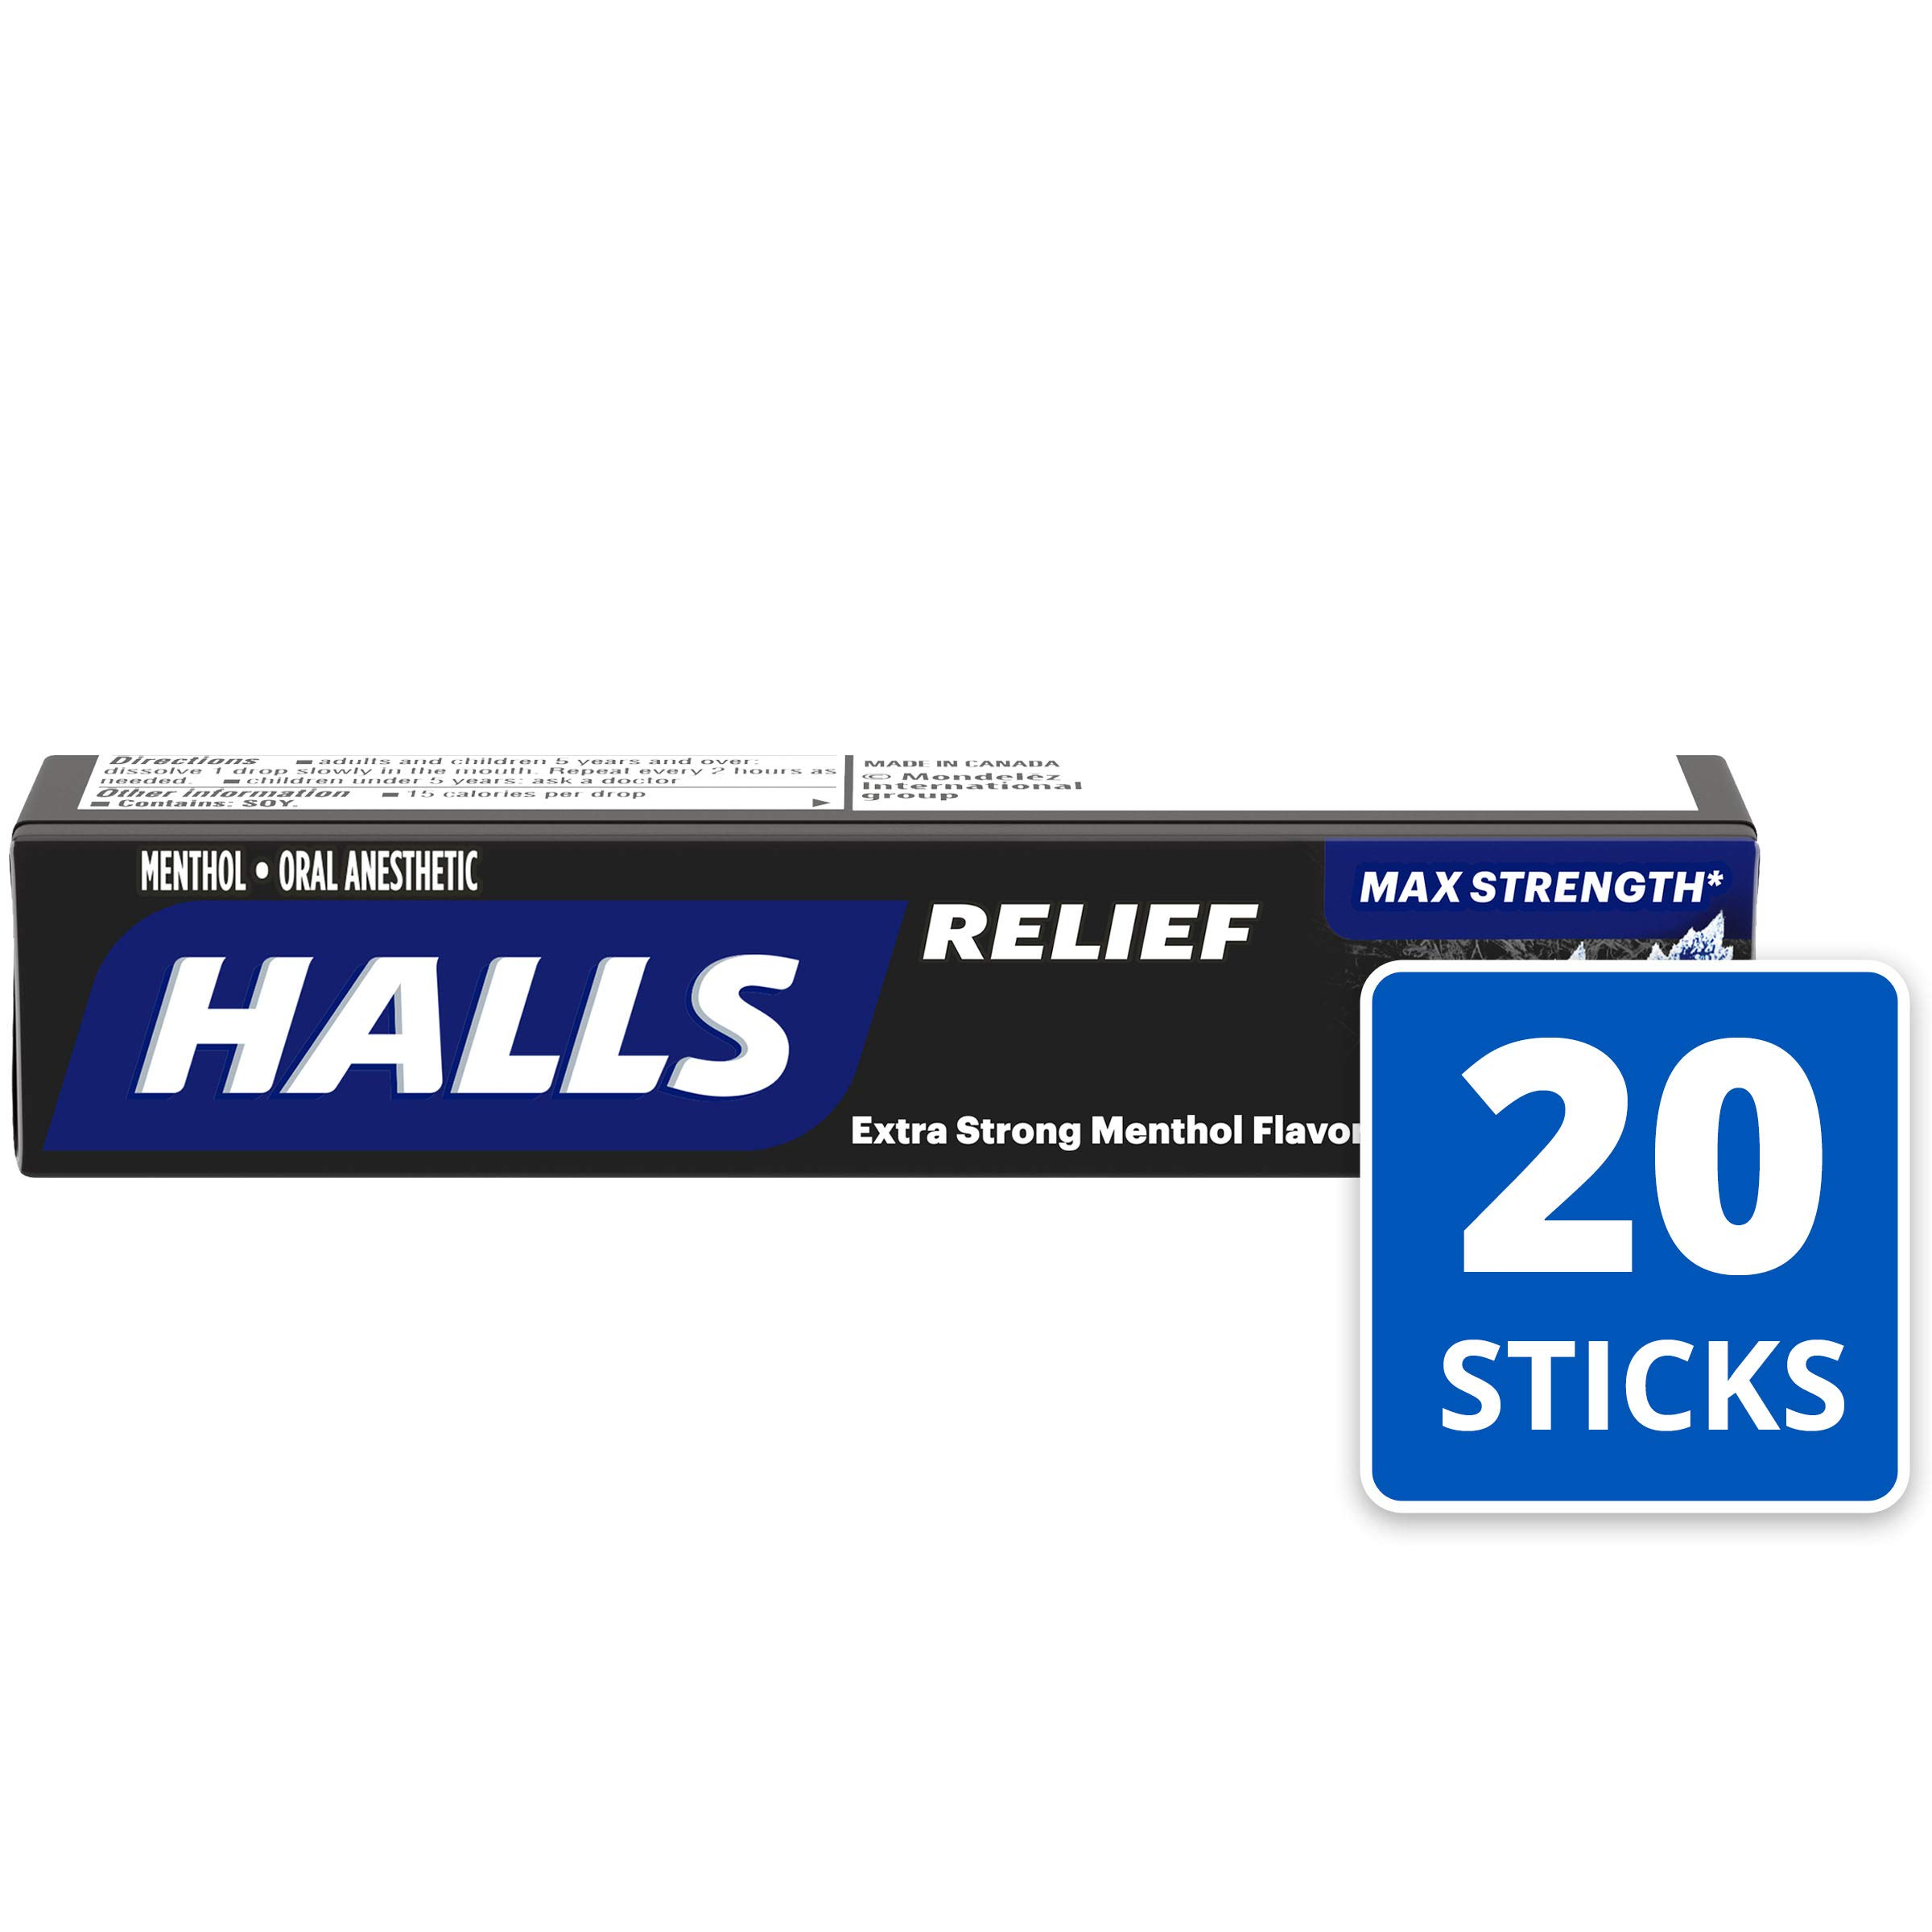 Halls Extra Strength Intense Cool Cough Drops - with Menthol - 180 Drops (20 sticks of 9 drops) by Halls